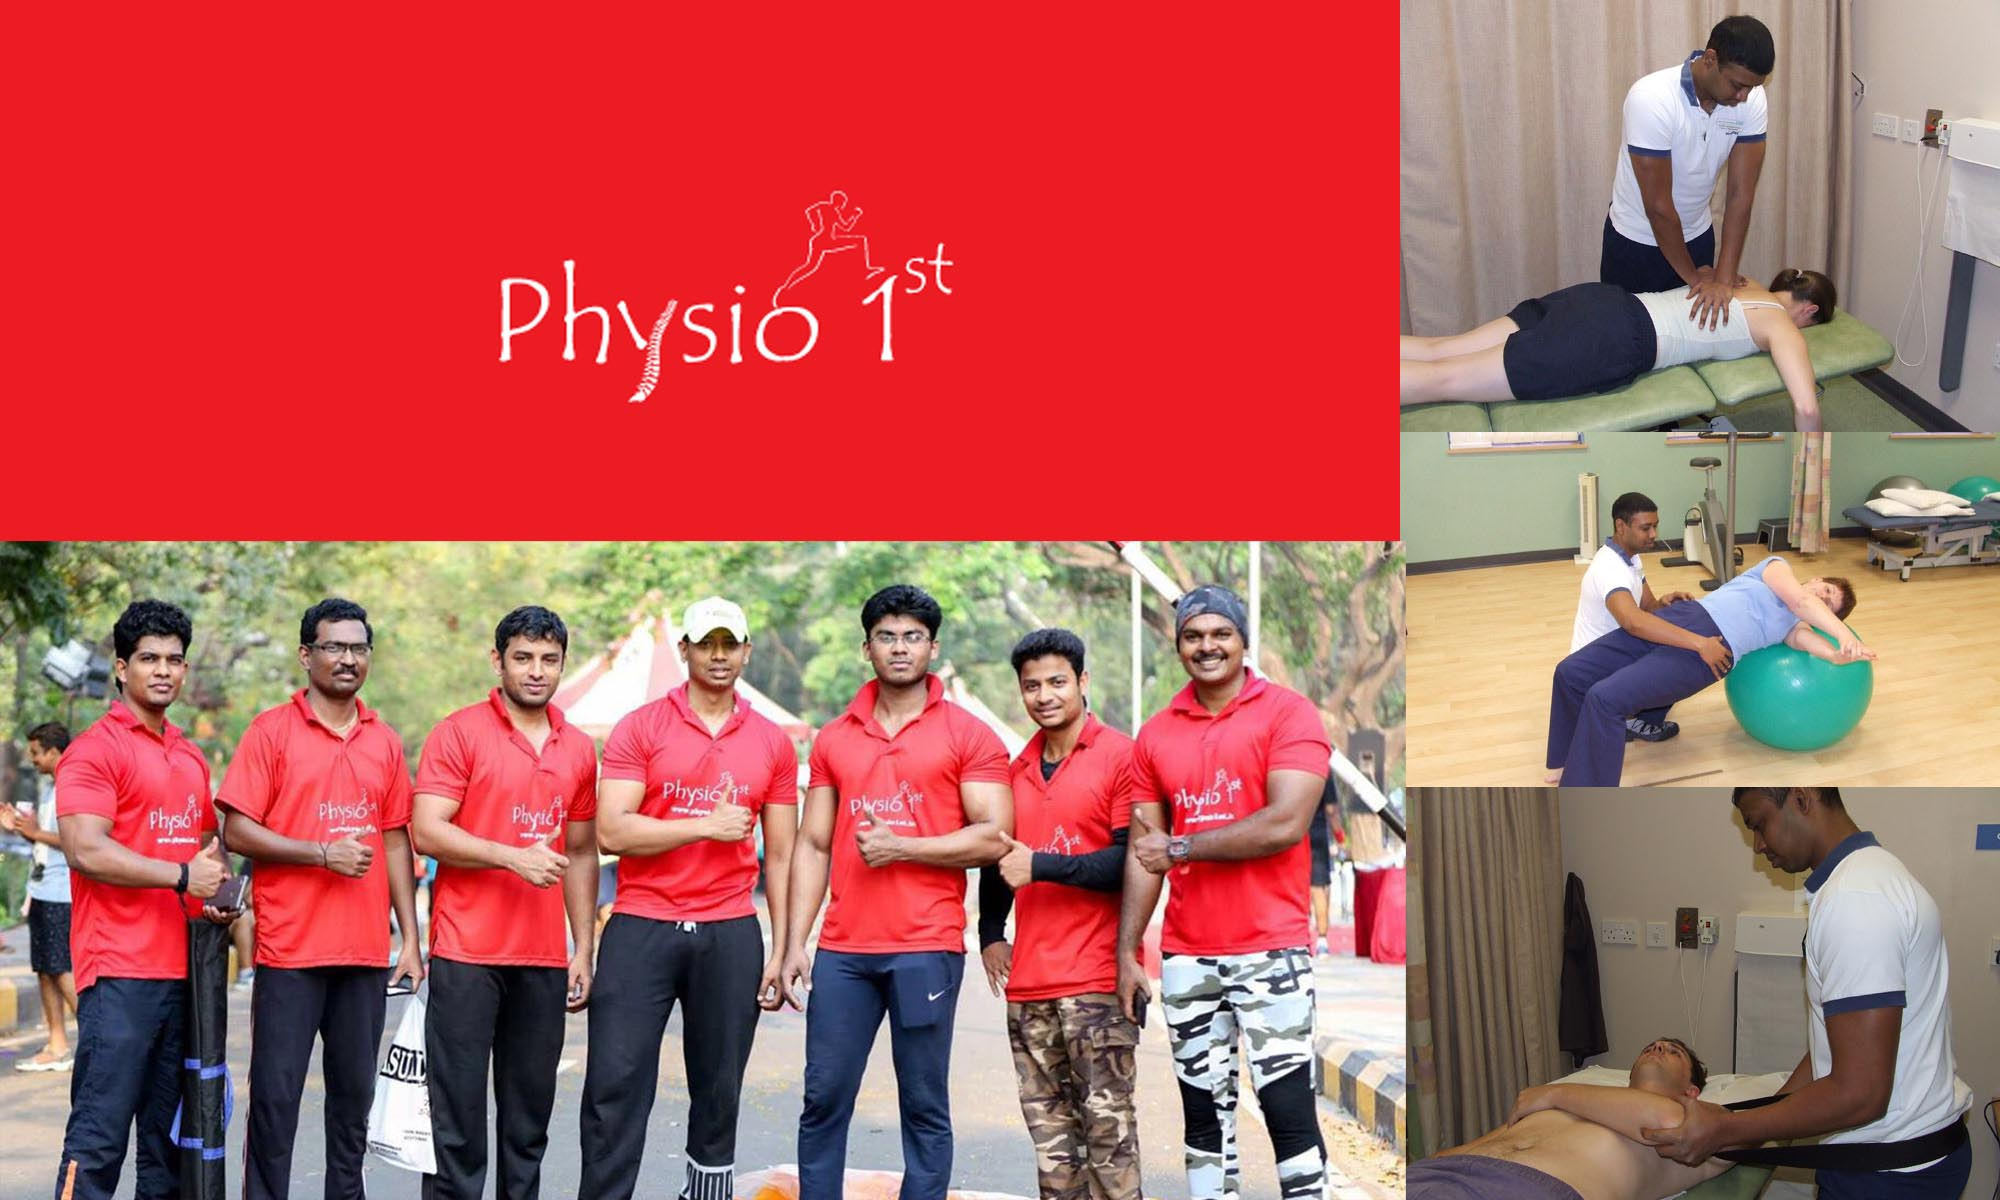 physio 1st - physiotherapy clinic